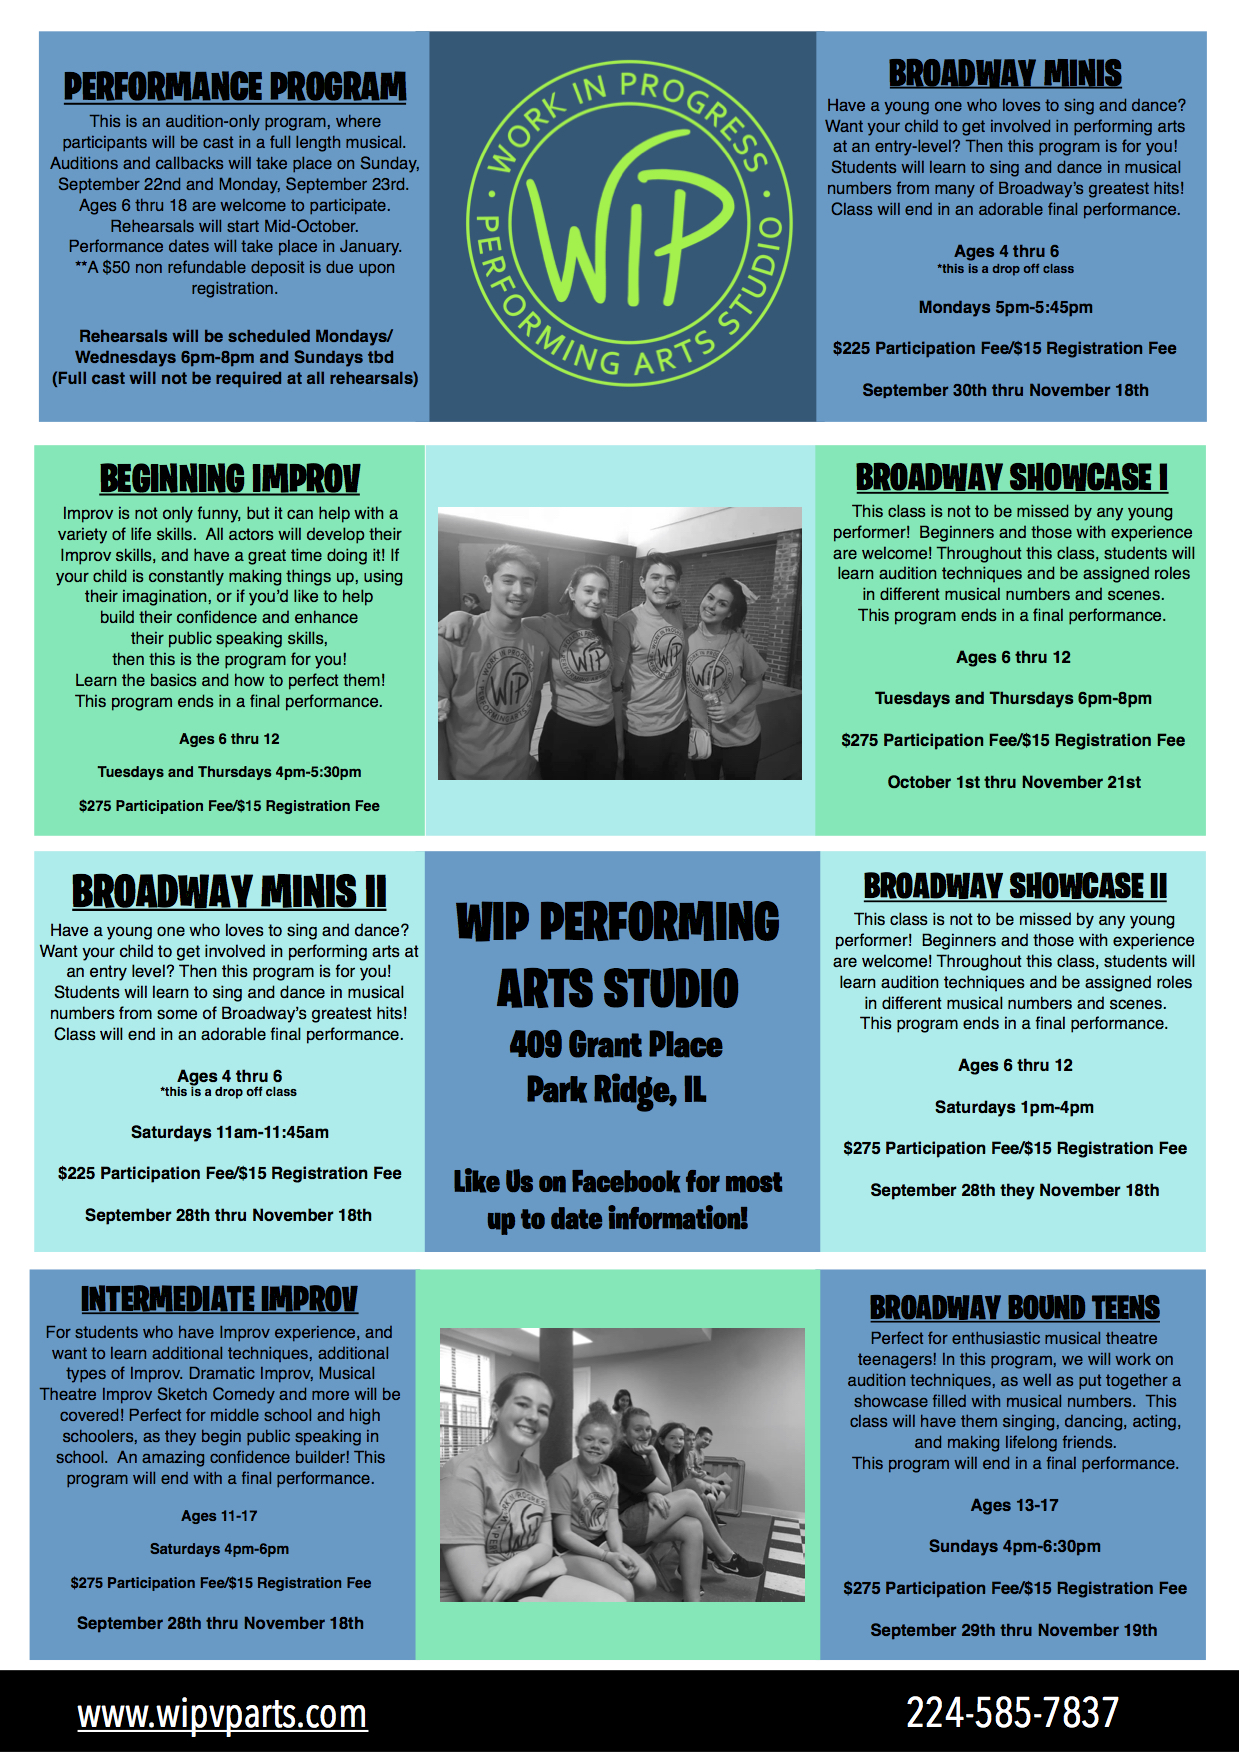 REGISTRATION WILL BEGIN MONDAY AUGUST 19th!!!!  QUESTIONS please email us at wipperformingarts@gmail.com!!!